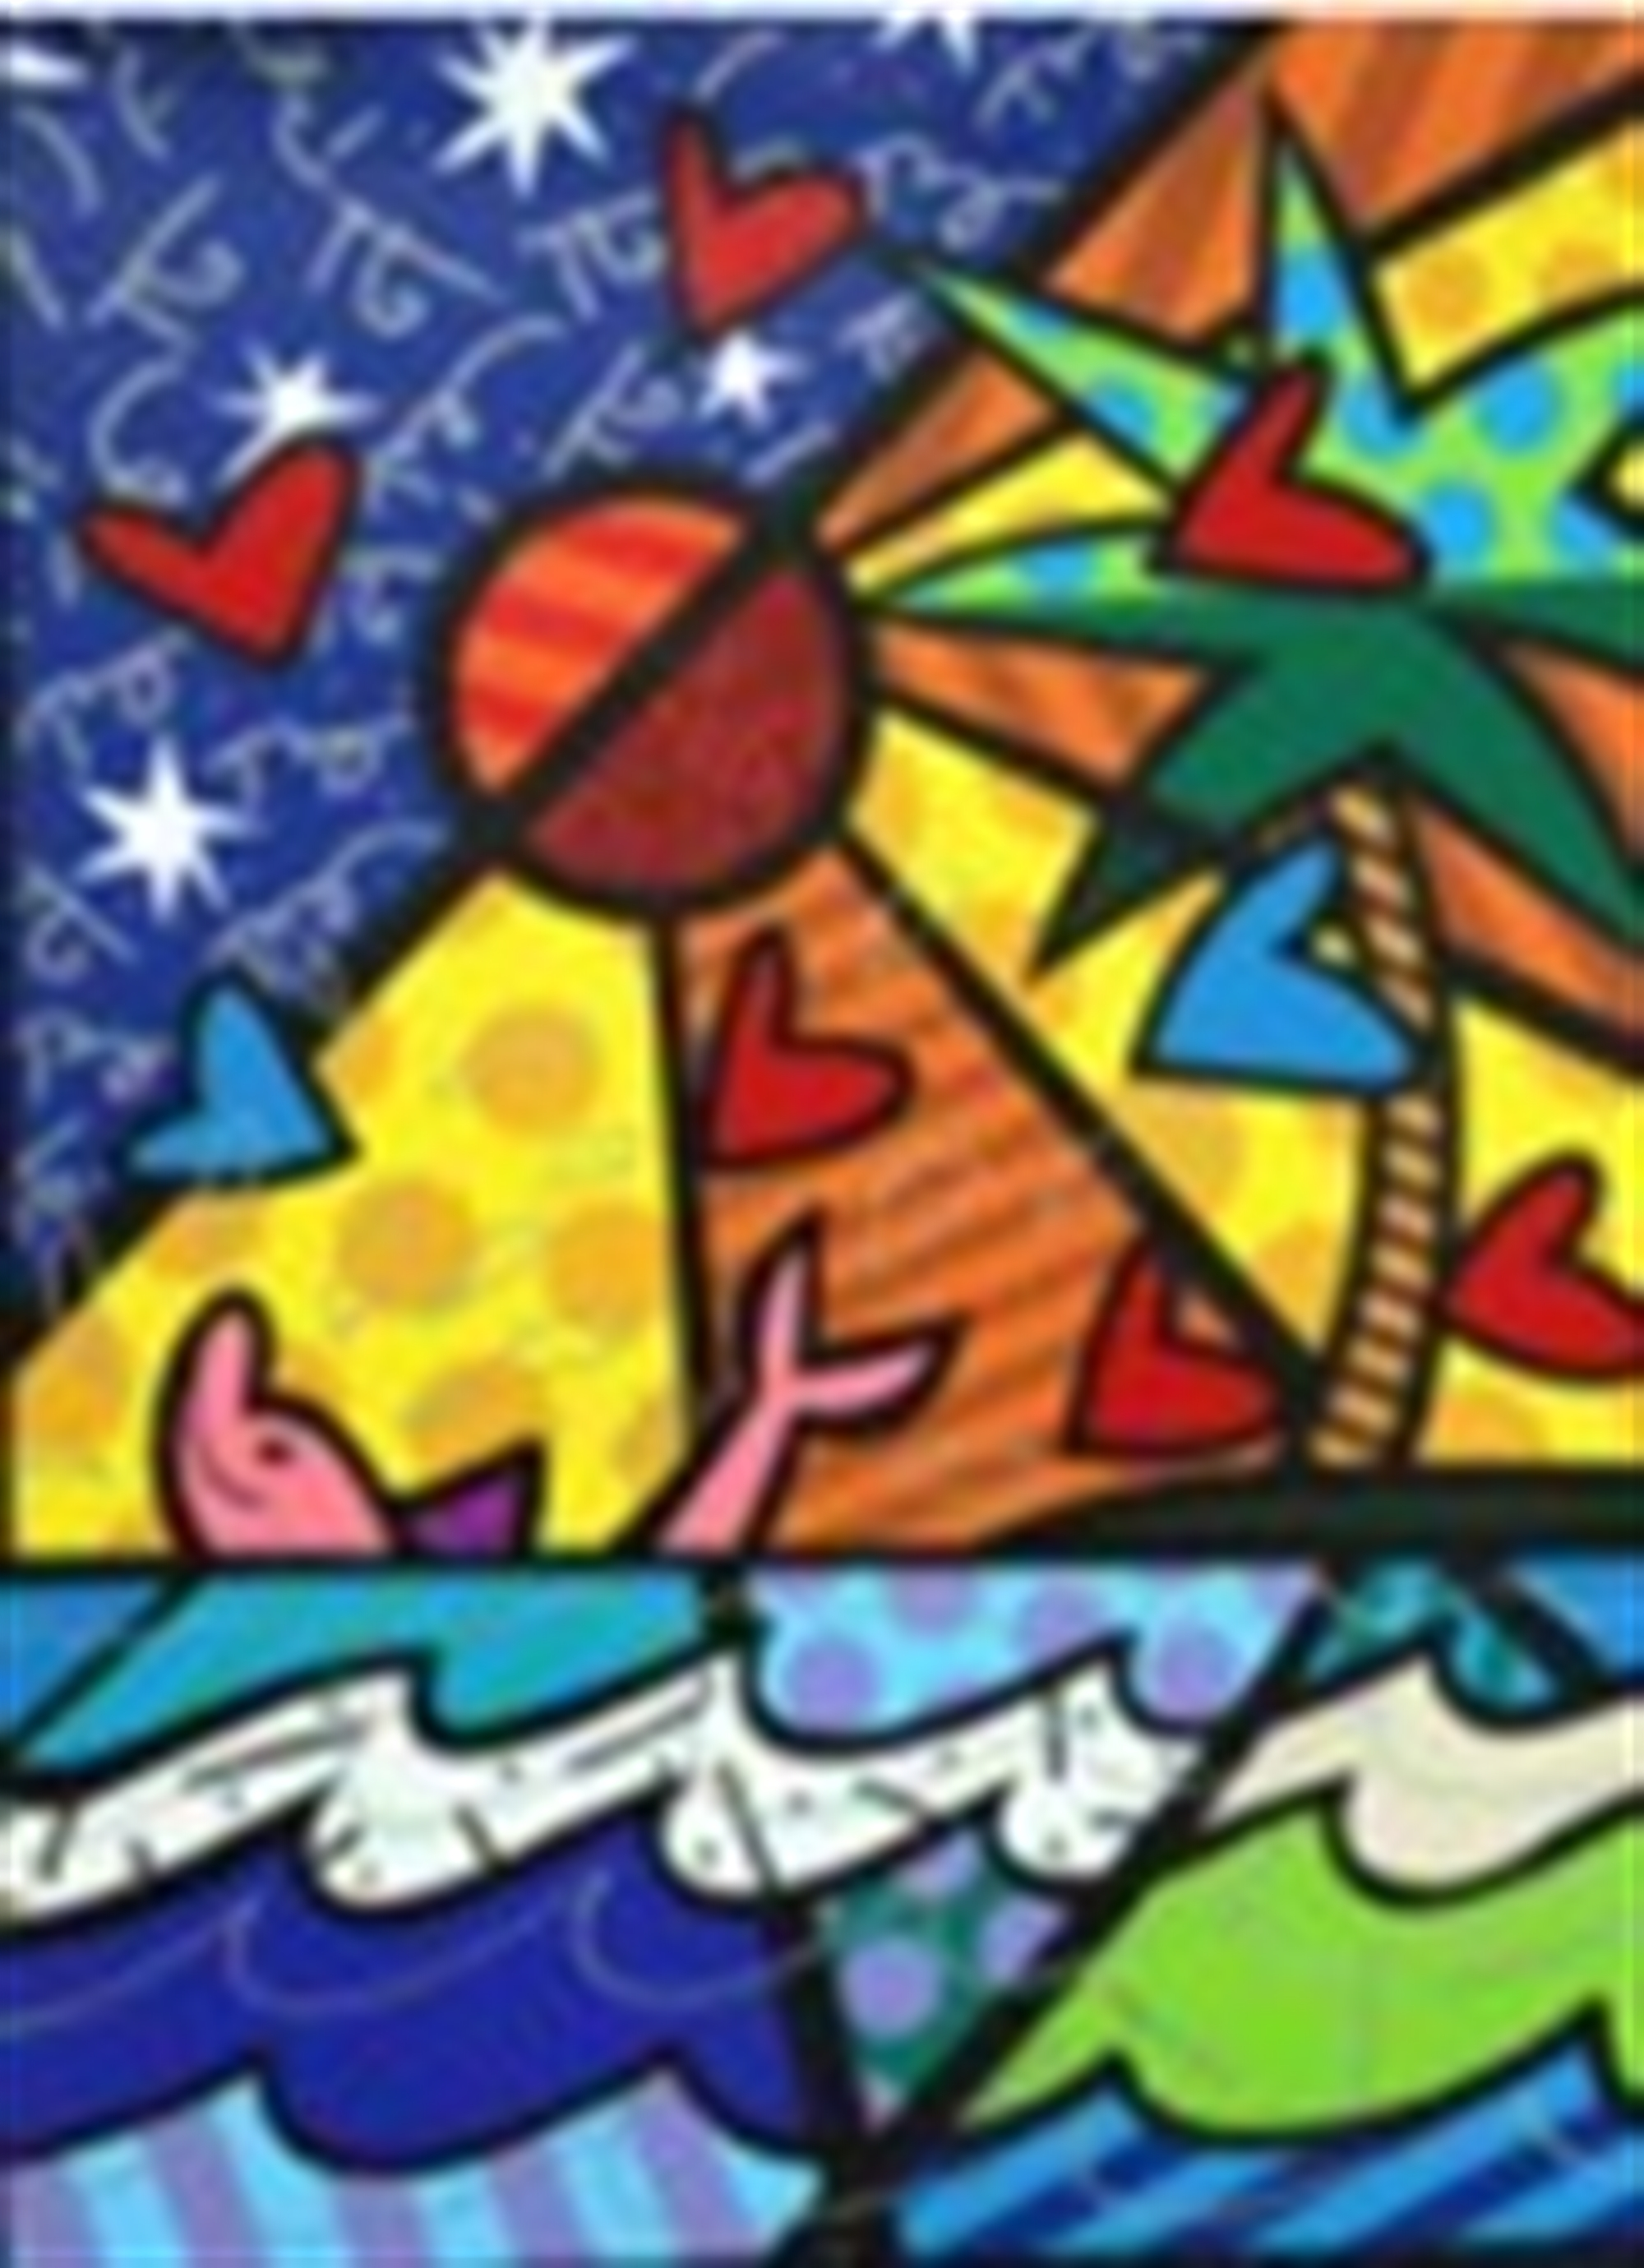 PINK DOLPIN by Romero Britto